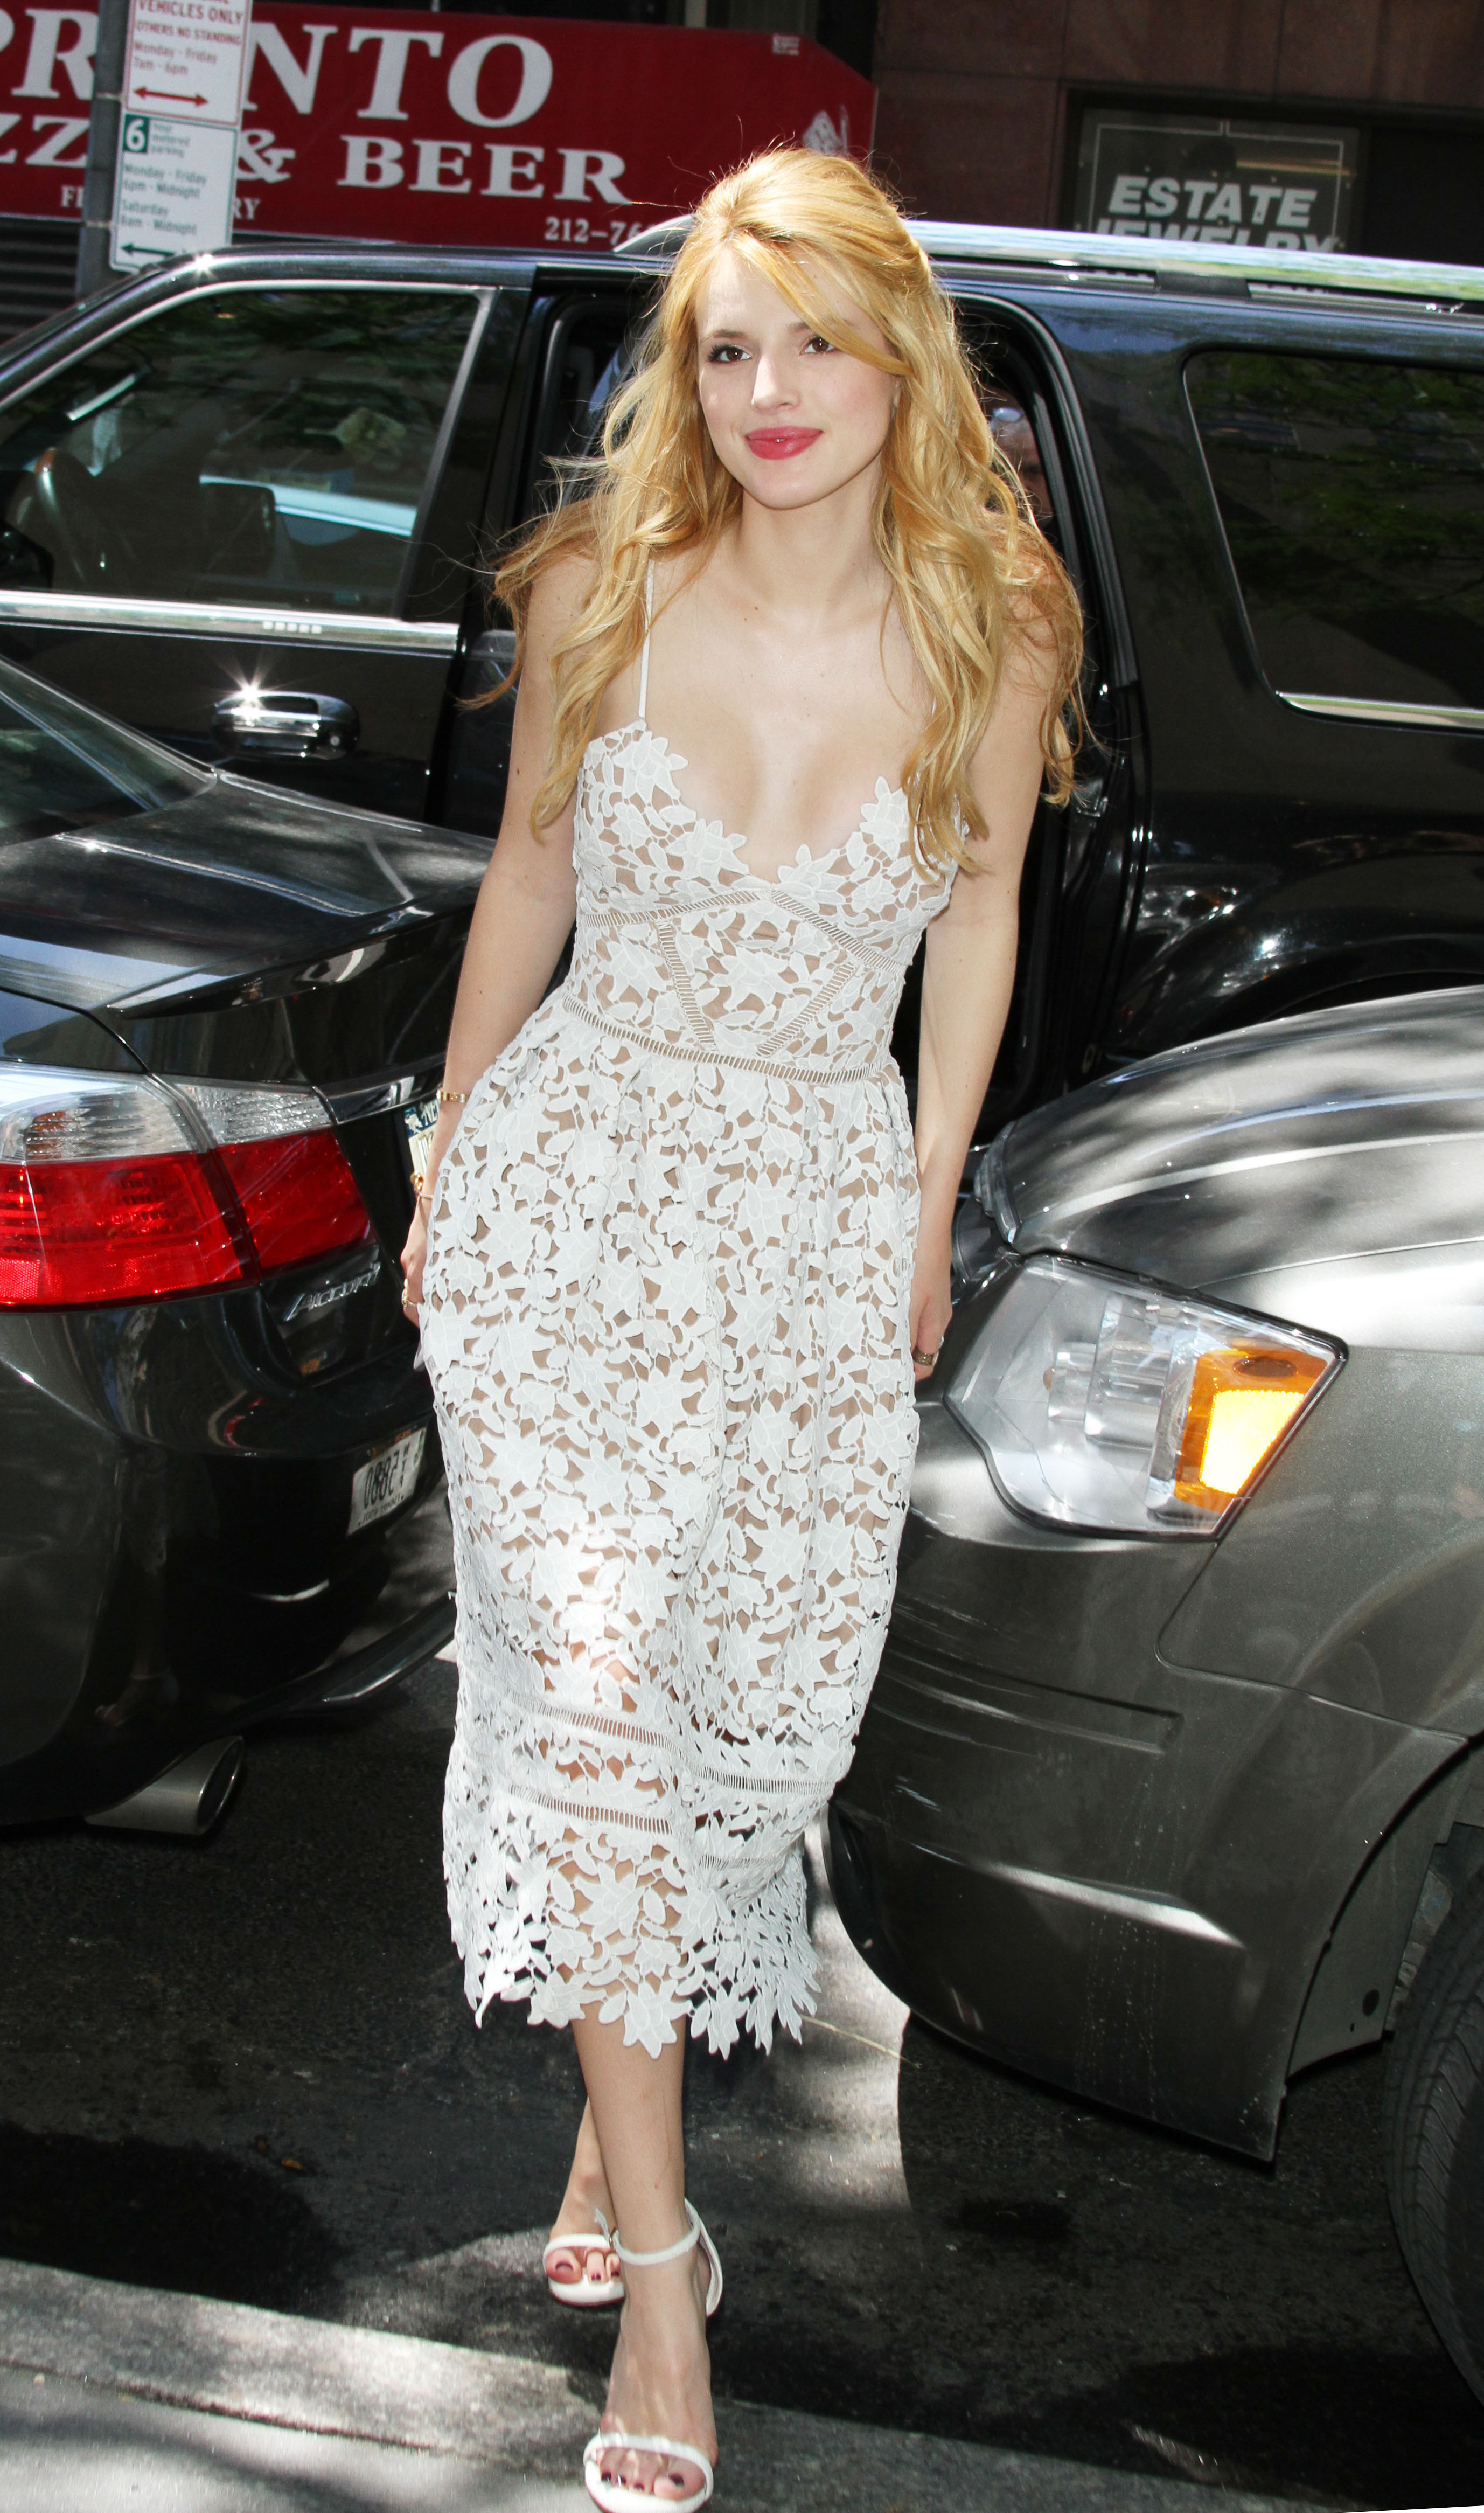 La hermosa Bella Thorne en HR